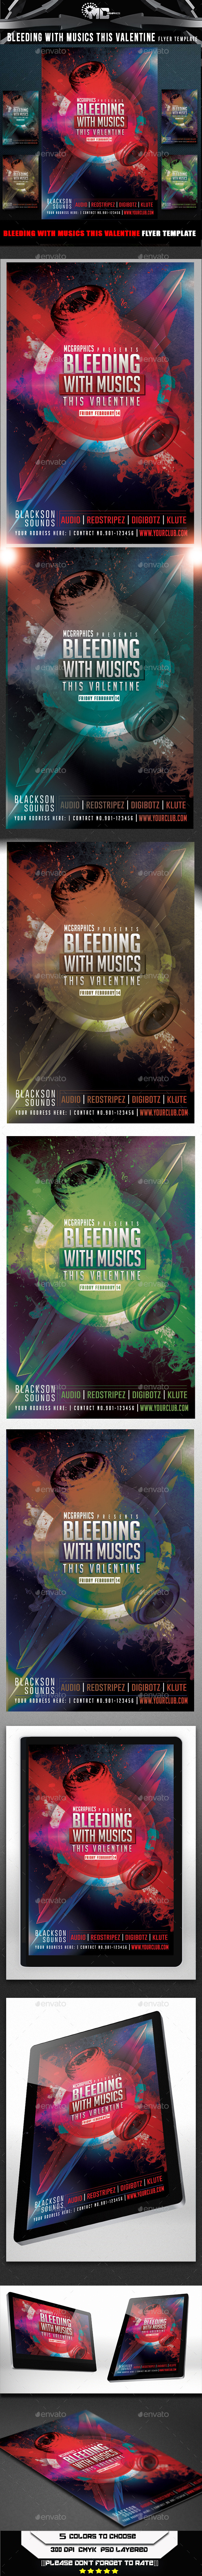 Bleeding with Musics this Valentine Flyer Template - Flyers Print Templates